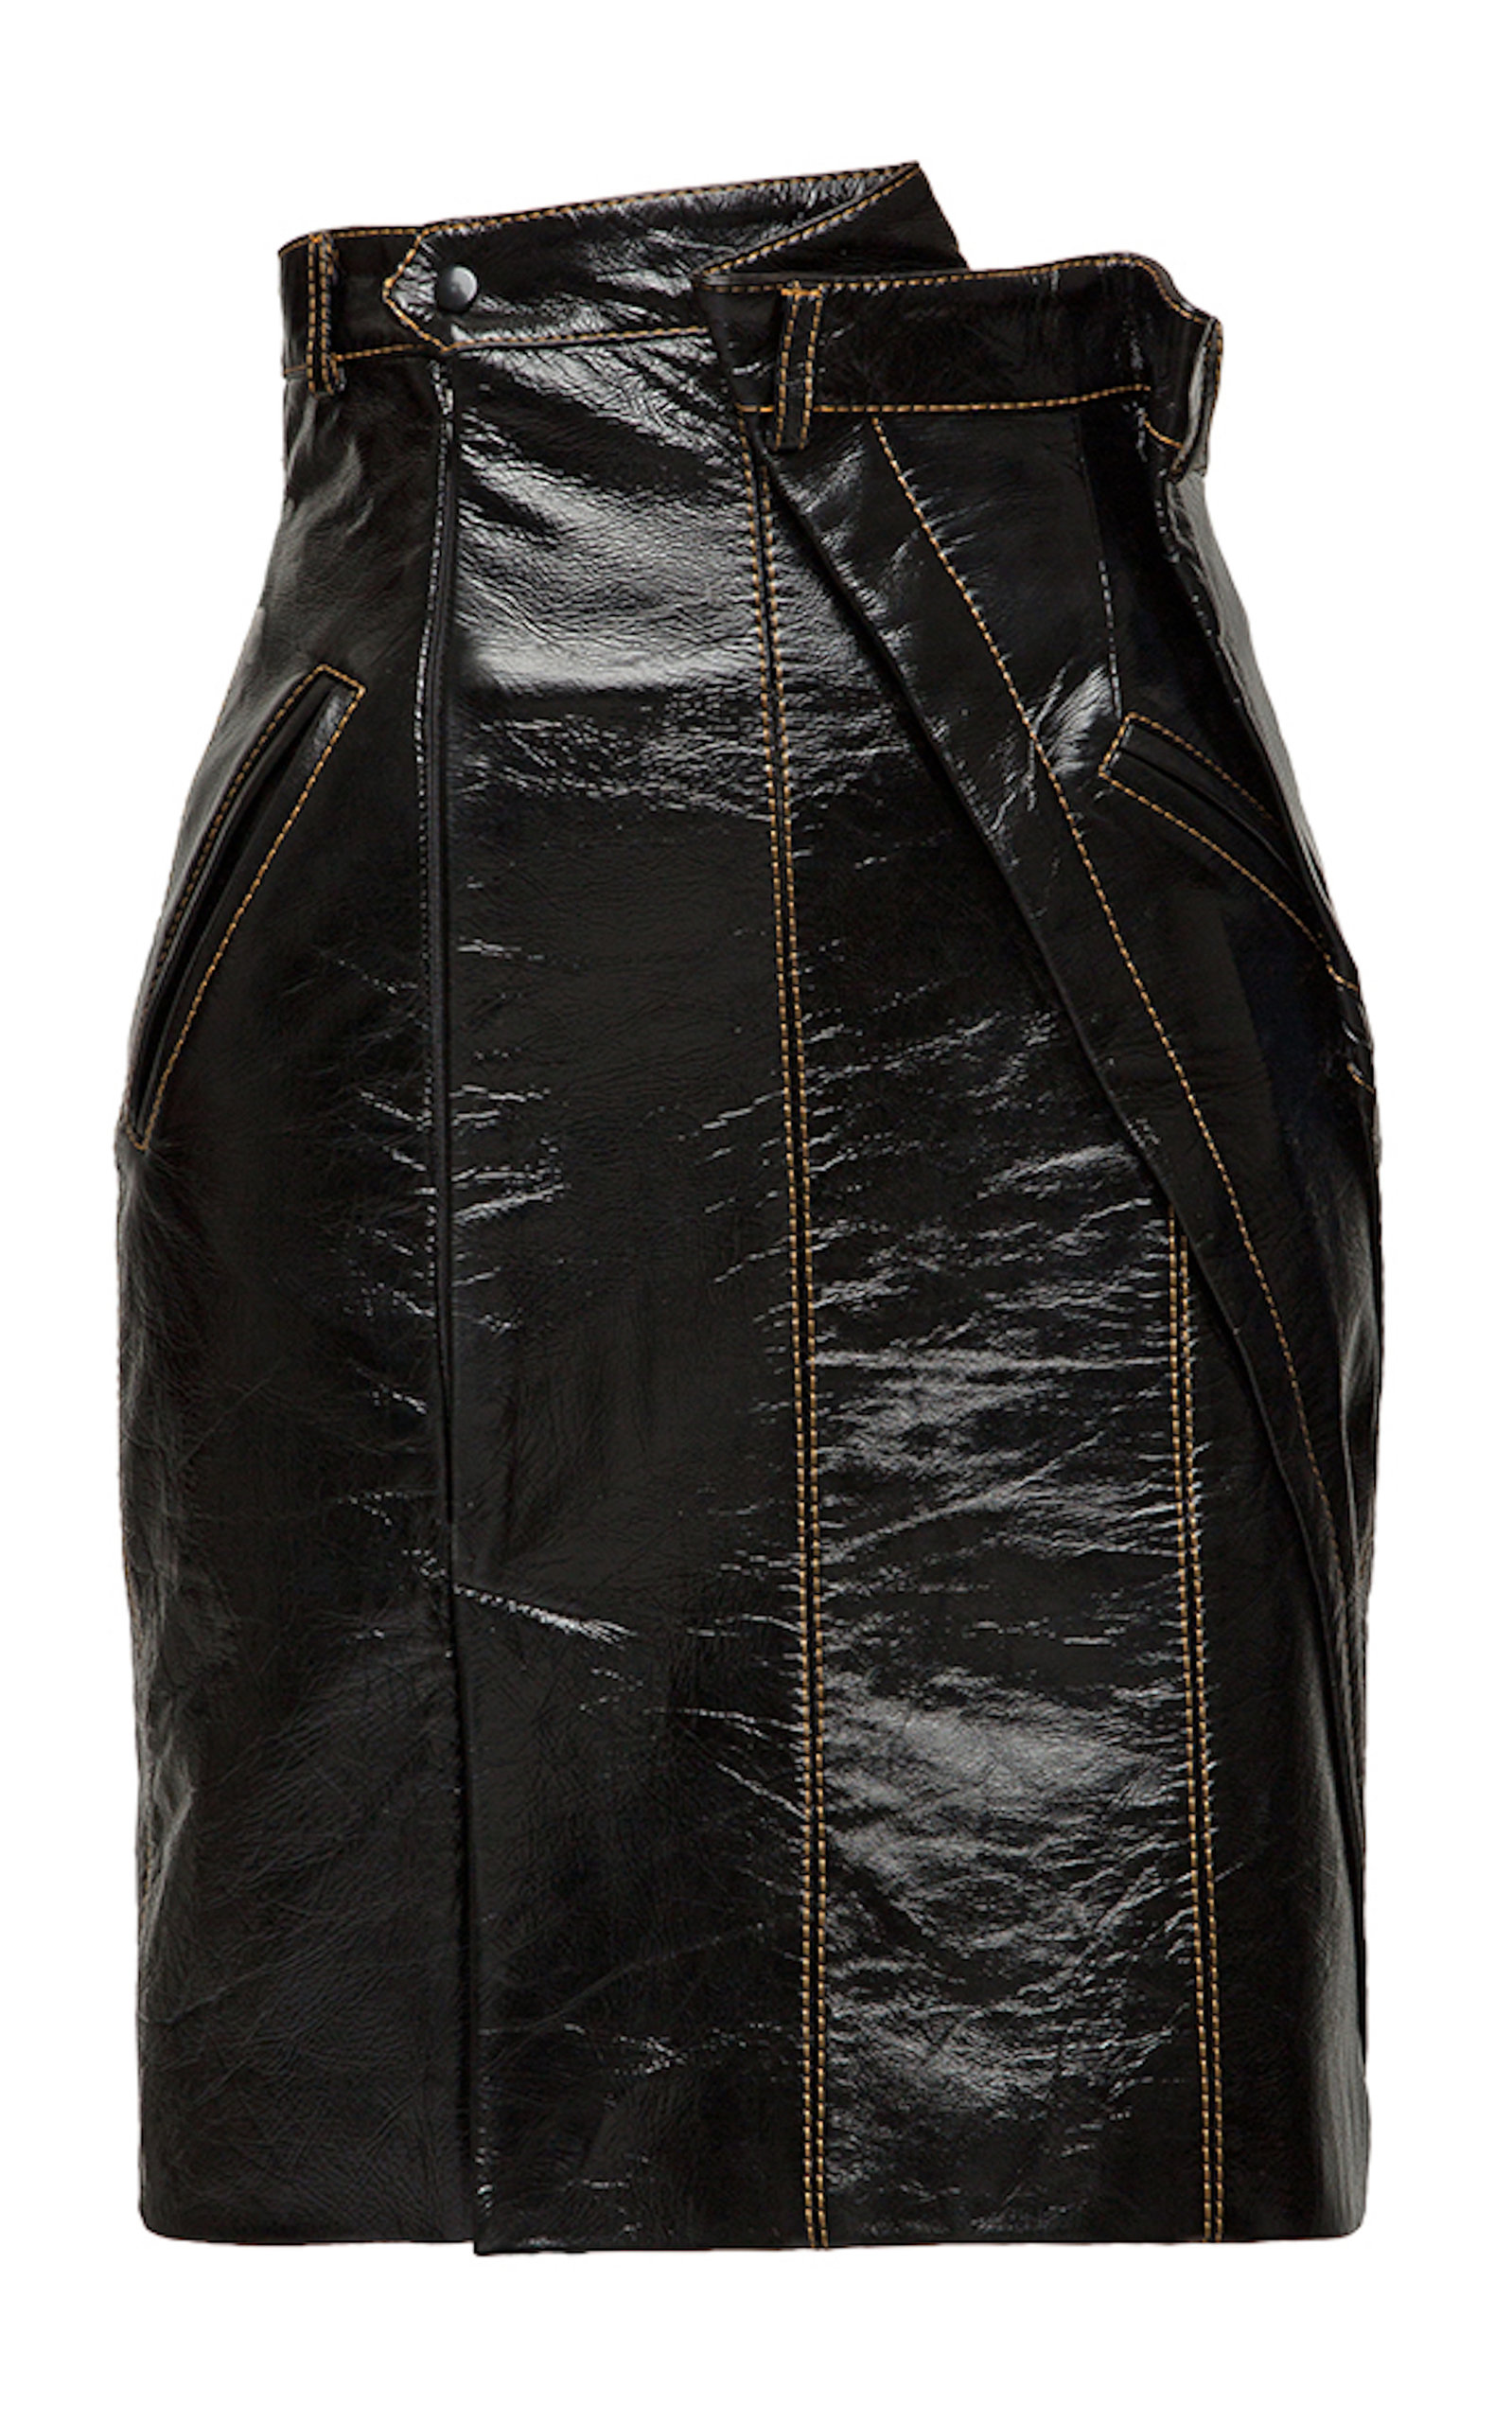 SITUATIONIST Leather Mini Skirt in Black